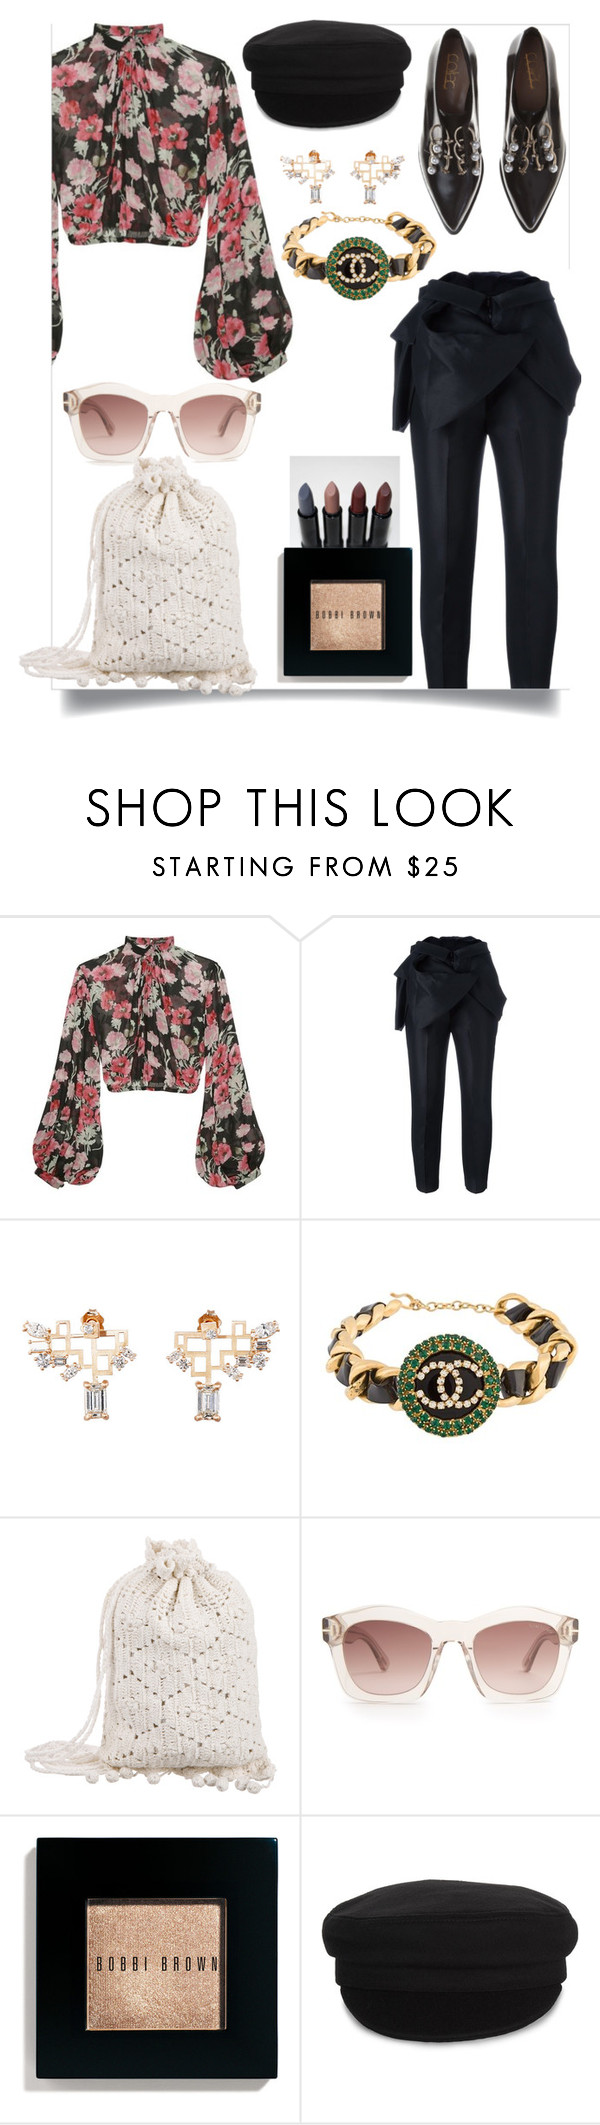 """Untitled #107"" by dido-c ❤ liked on Polyvore featuring Coliàc Martina Grasselli, Jill Stuart, Dsquared2, Chanel, Zimmermann, Tom Ford, Bobbi Brown Cosmetics and Étoile Isabel Marant"